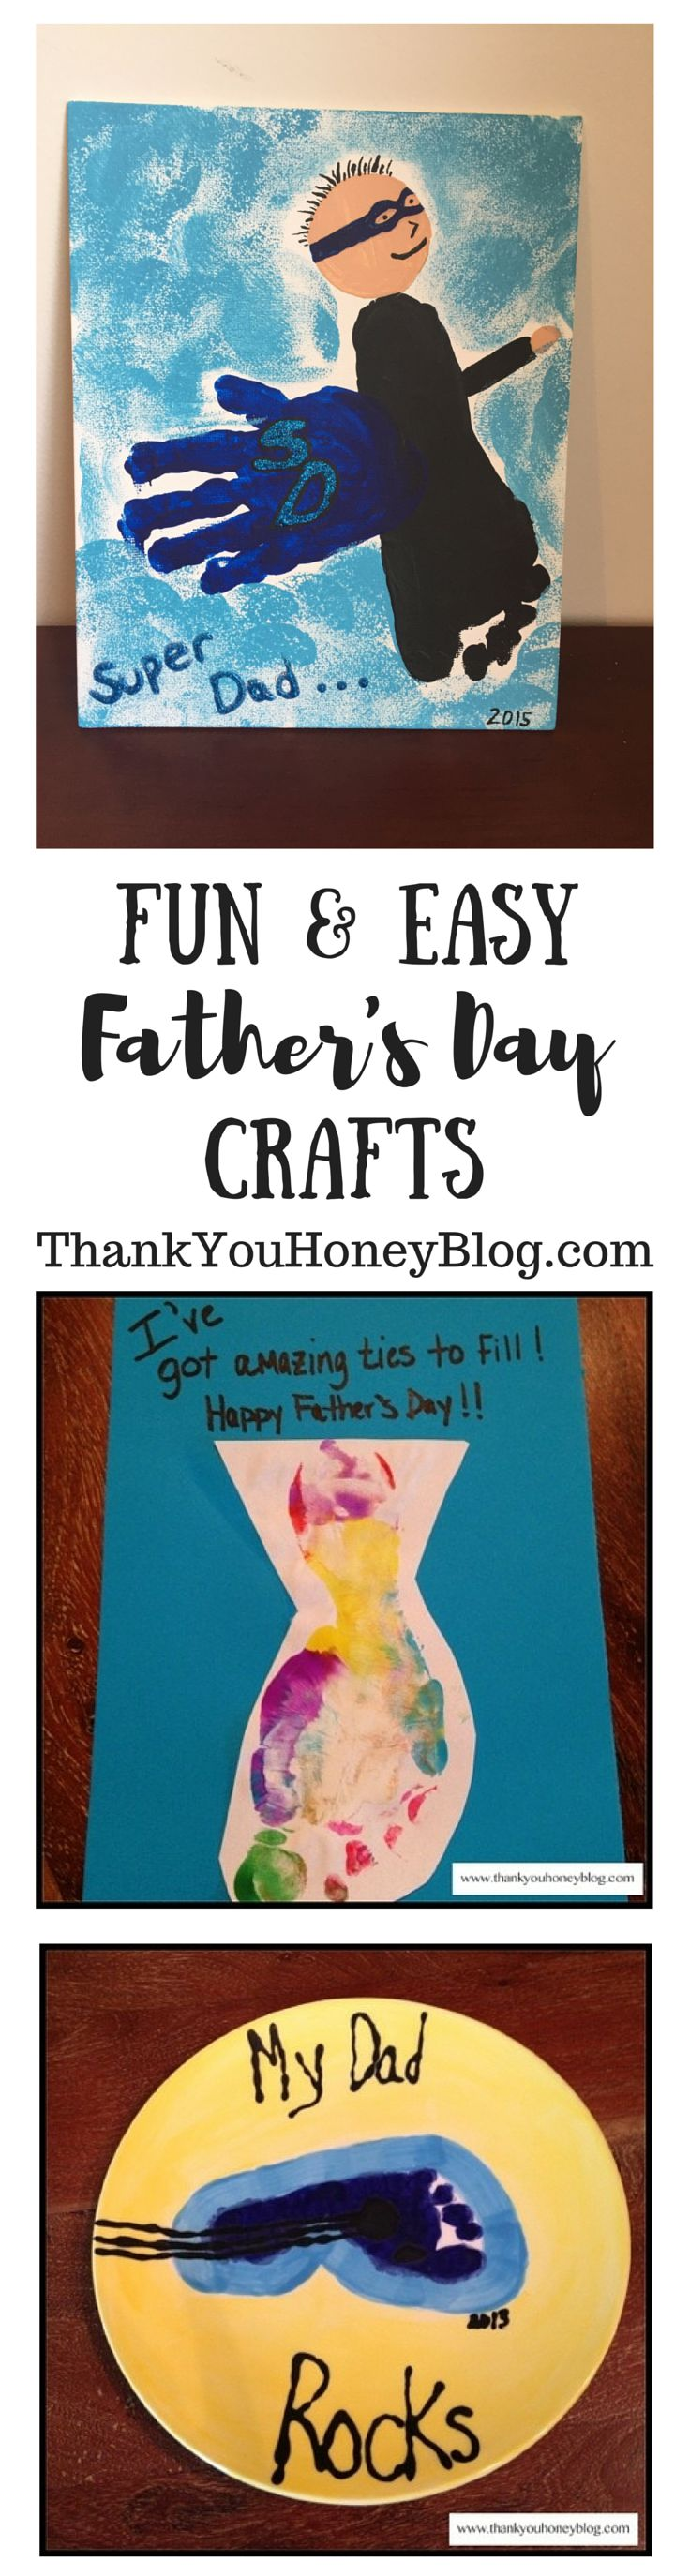 Father's Day, Crafts, Homemade, Father's Day Gift Ideas, DIY, Gifts from Kids, Cards, Handmade, Made with Love, Gifts, Dad, Fun & Easy Father's Day Crafts,